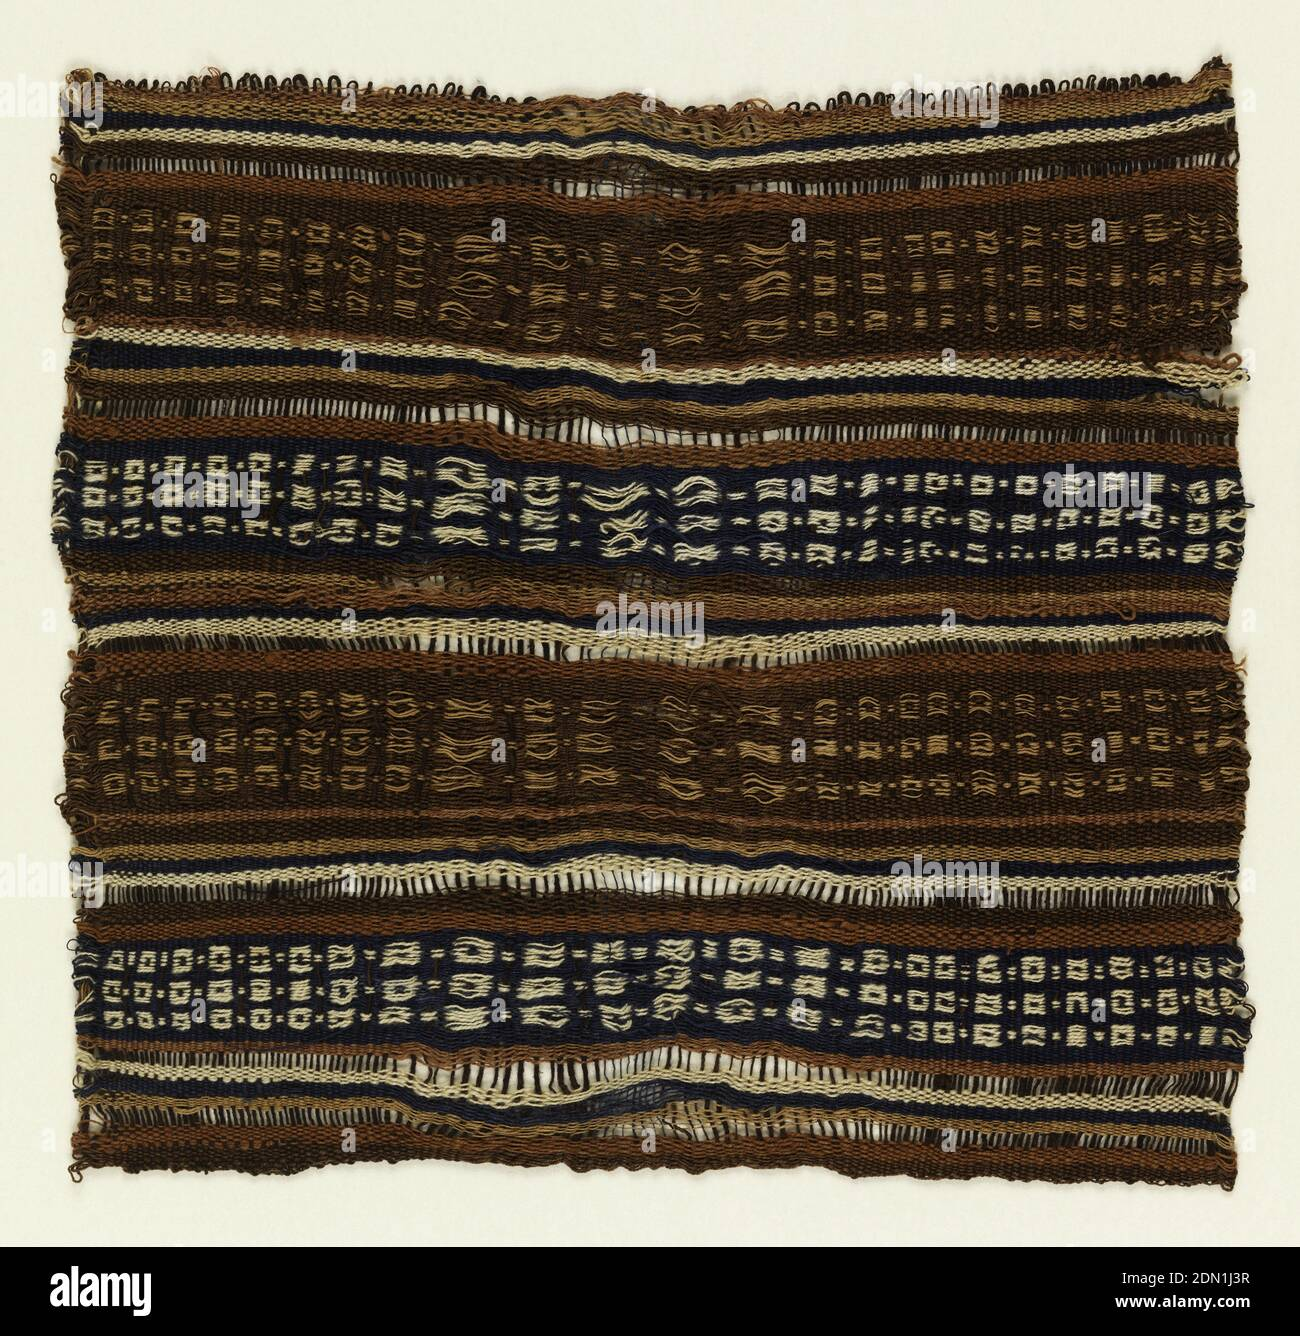 Fragment, Medium: cotton, wool Technique: warp-faced plain weave patterned by warp floats and stripes, Horizontal bands wide and narrow. Wide bands are warp-patterned in a light color on either blue or brown background. Other colors are tan and dark red. Fragment probably from a bag., Peru, 1000–1450, woven textiles, Fragment Stock Photo